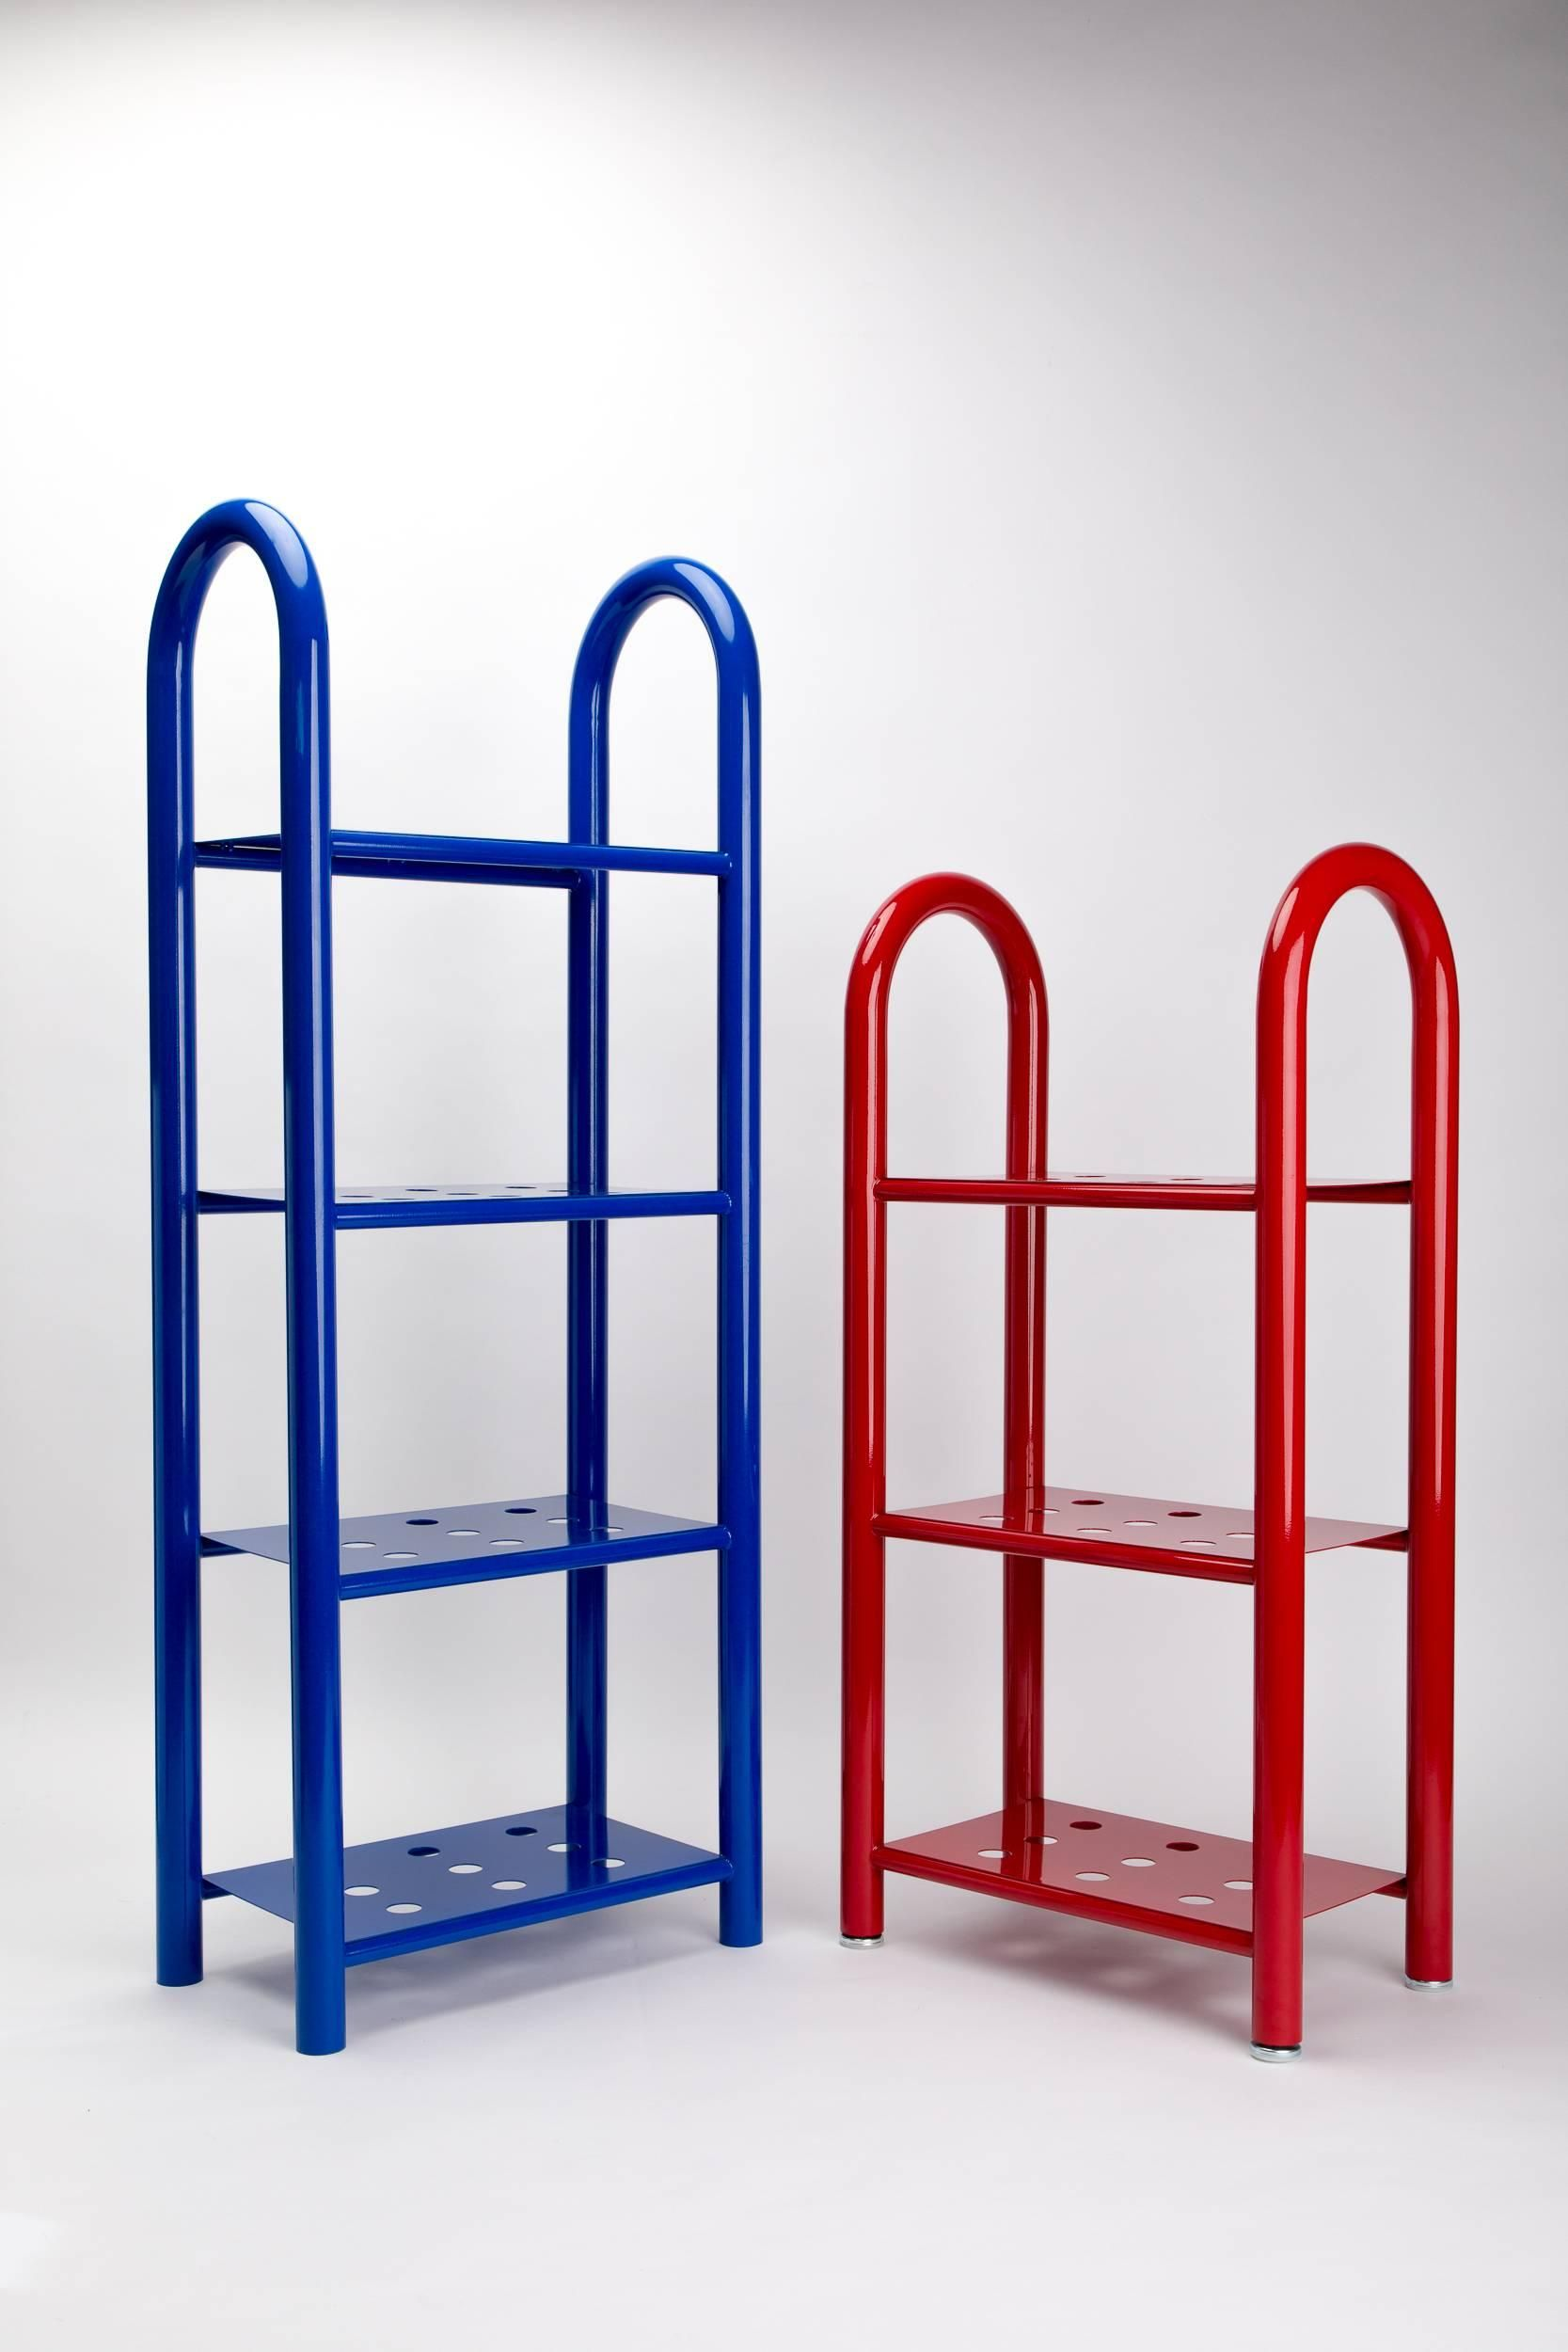 Tubular Bookshelf By Another Human, Large, Modern Sculptural Bookshelf For